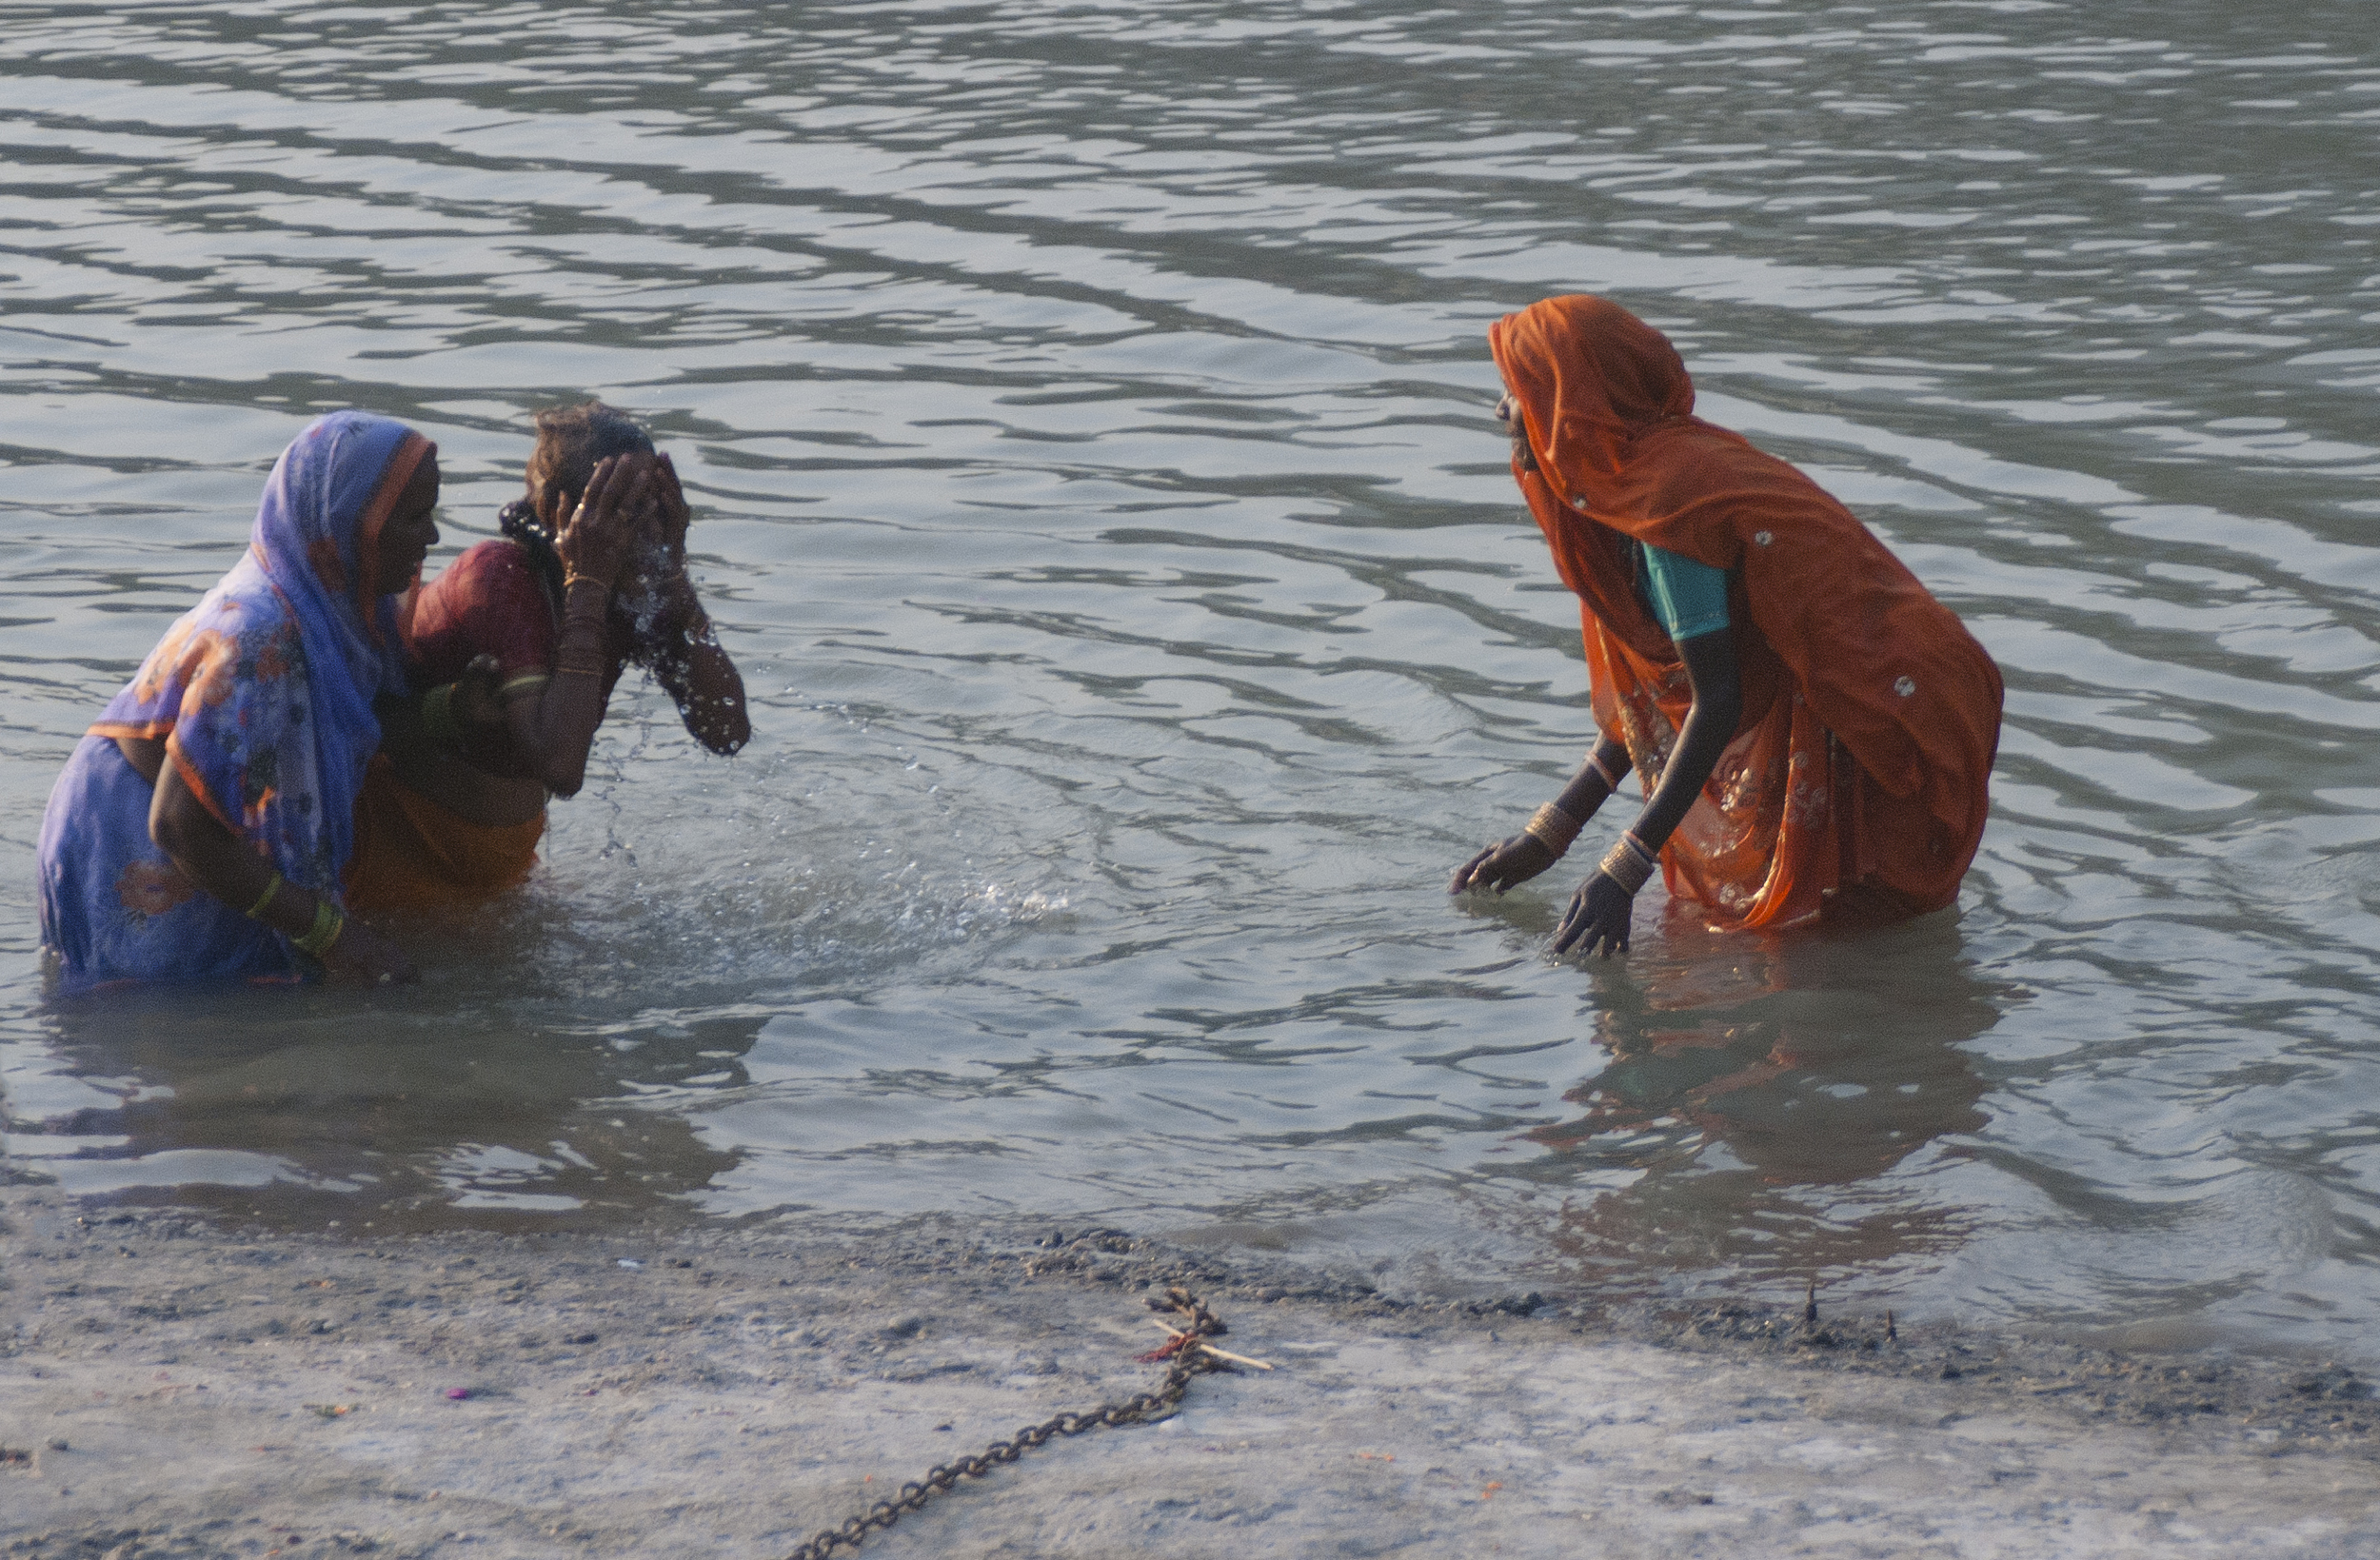 Woman practice ritualistic washing in the river. The chain can be attached to those who cannot swim to keep from drowning.